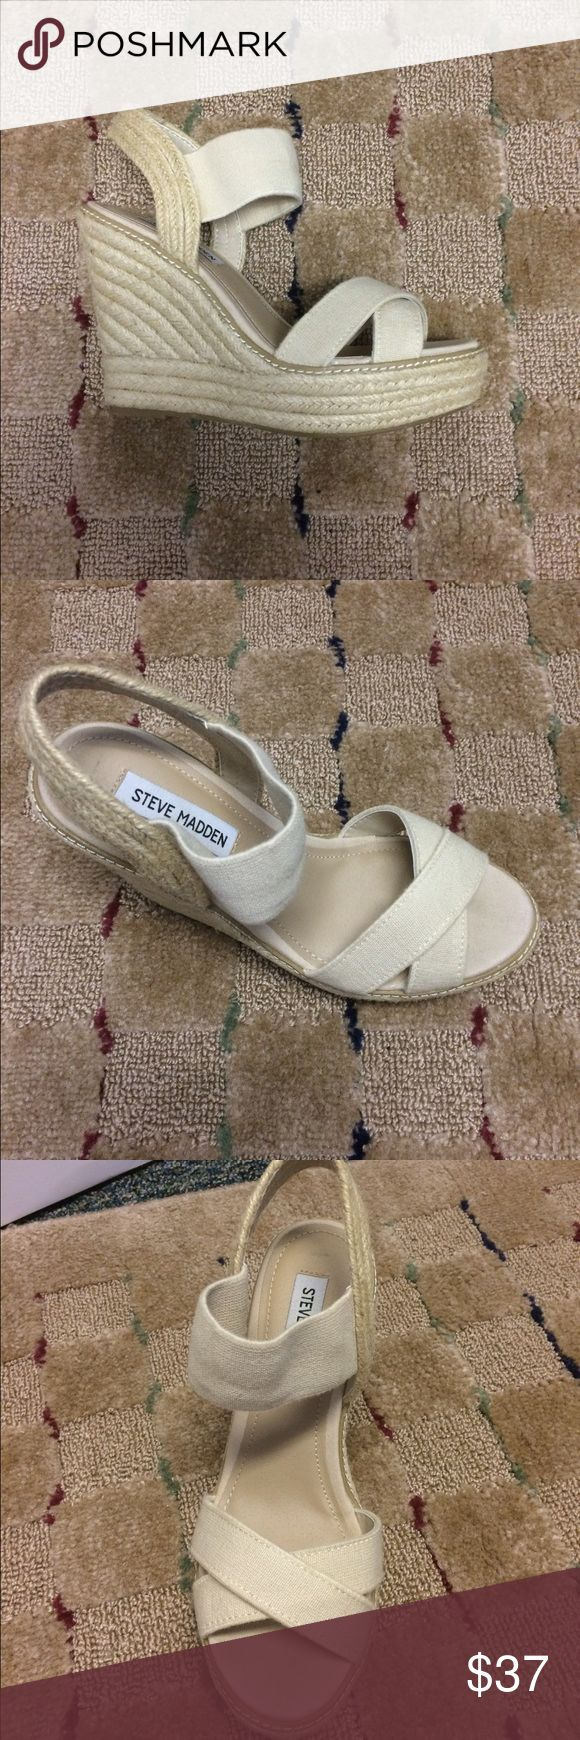 Steve Madden Cream Nude Espadrille Wedges Beautiful wedges in like new condition! Only worn once. The style is Steve Madden's Eira in the color Natural which is a nude, beige, cream color. Open to ️️! Steve Madden Shoes Wedges